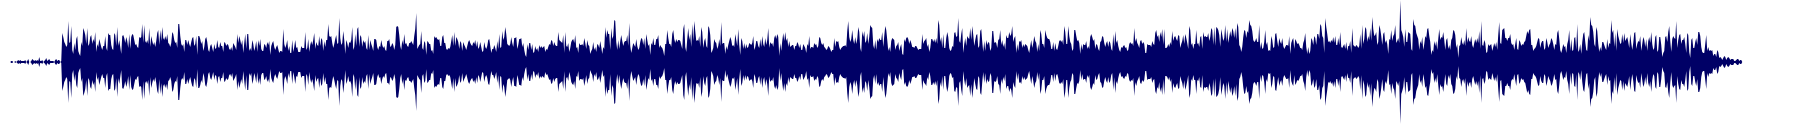 waveform of track #75147